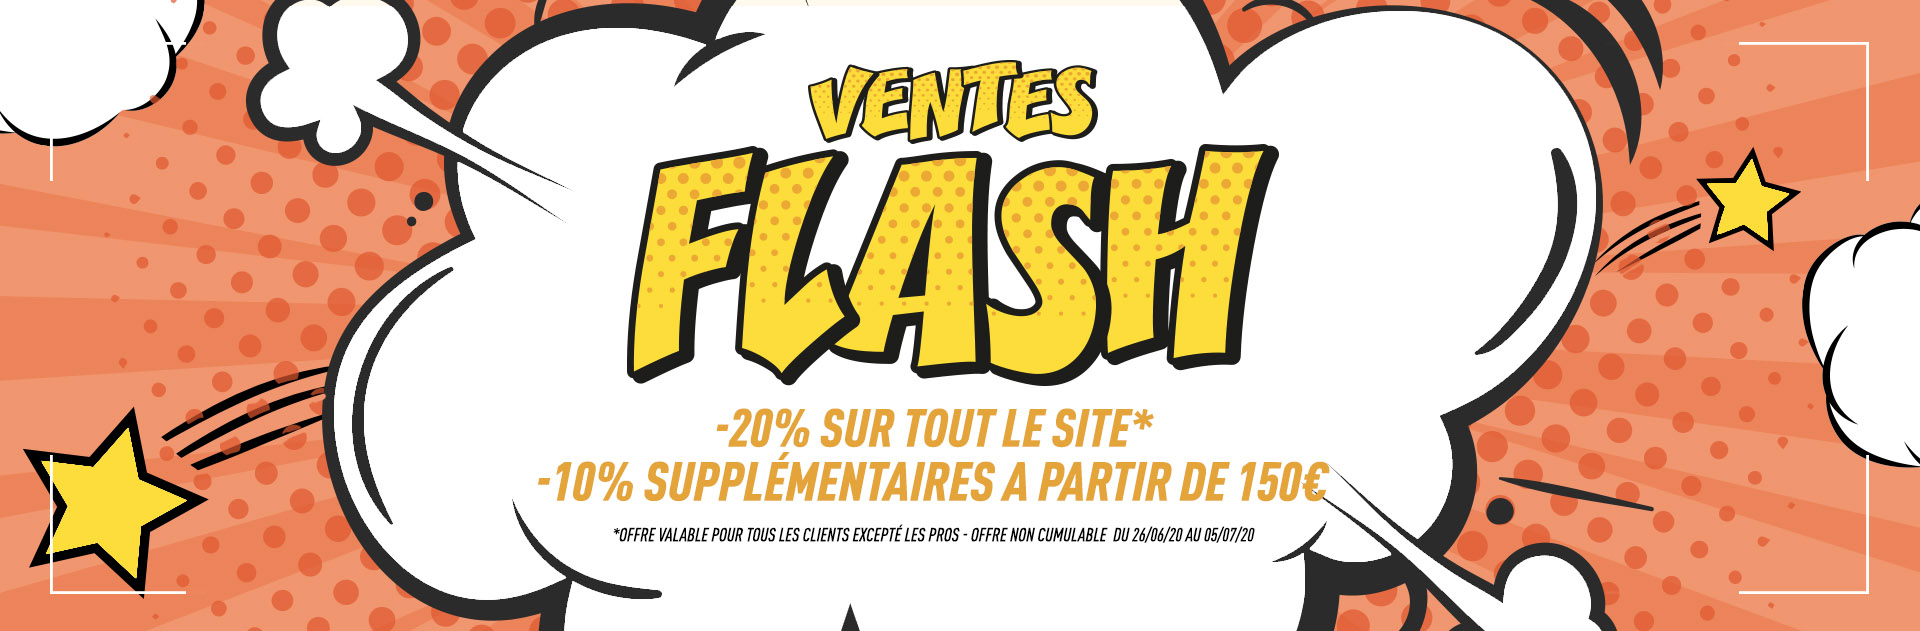 ventesflash